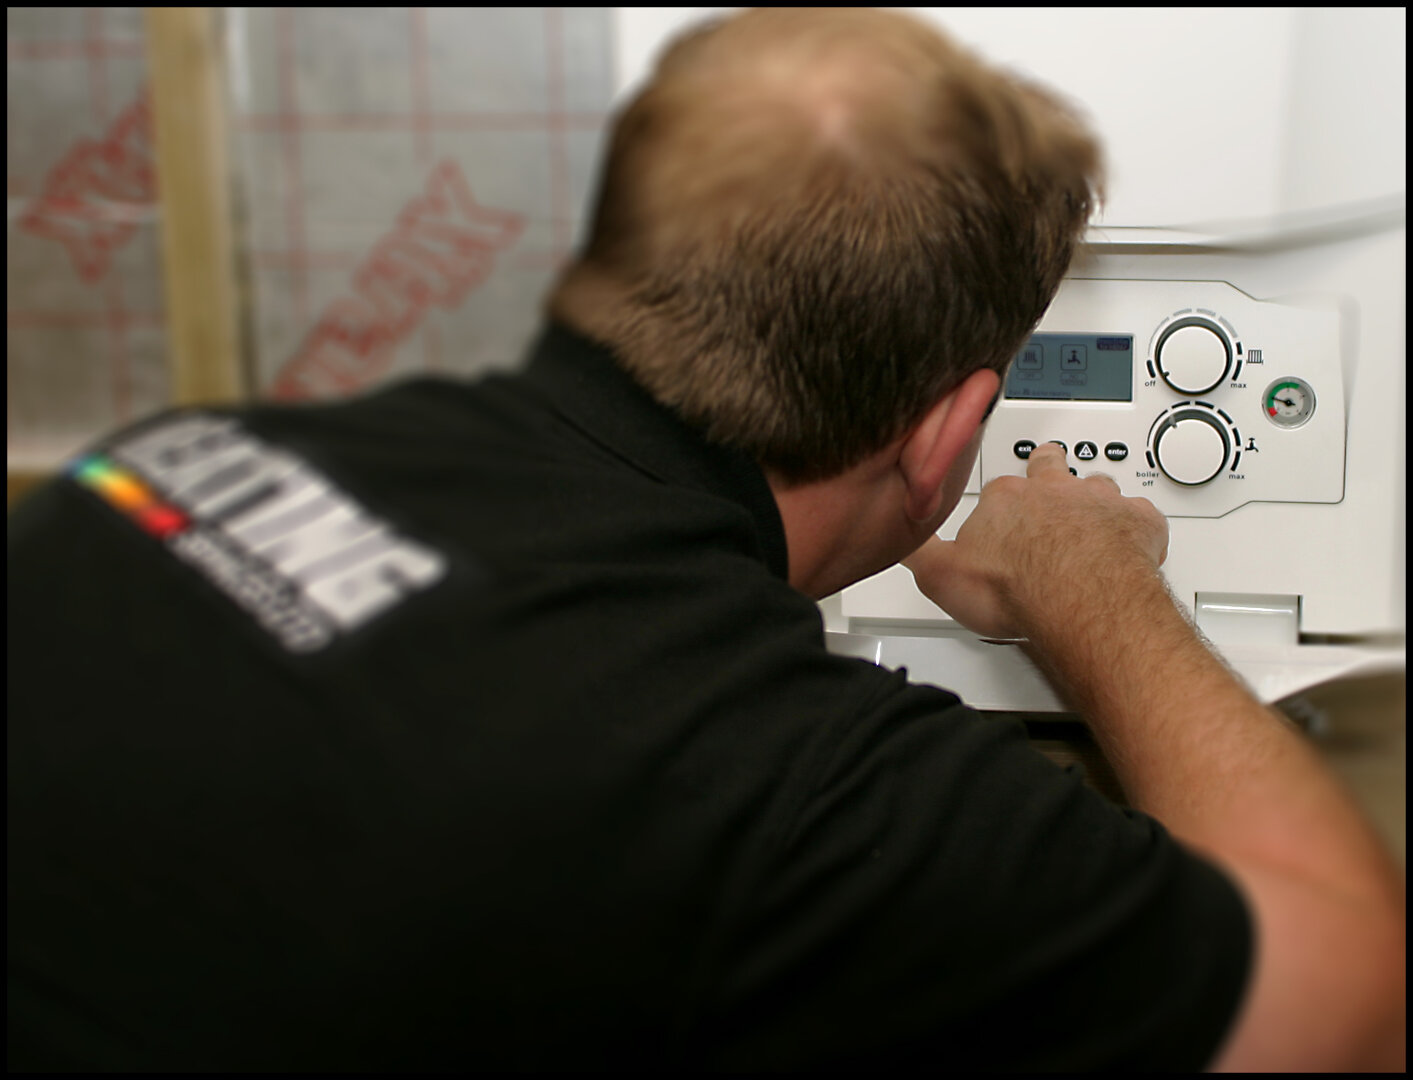 Plumbers Boiler Installation Service and Repairs and Bathroom Design and Installation by Heating Services Ltd in Westerham (5)